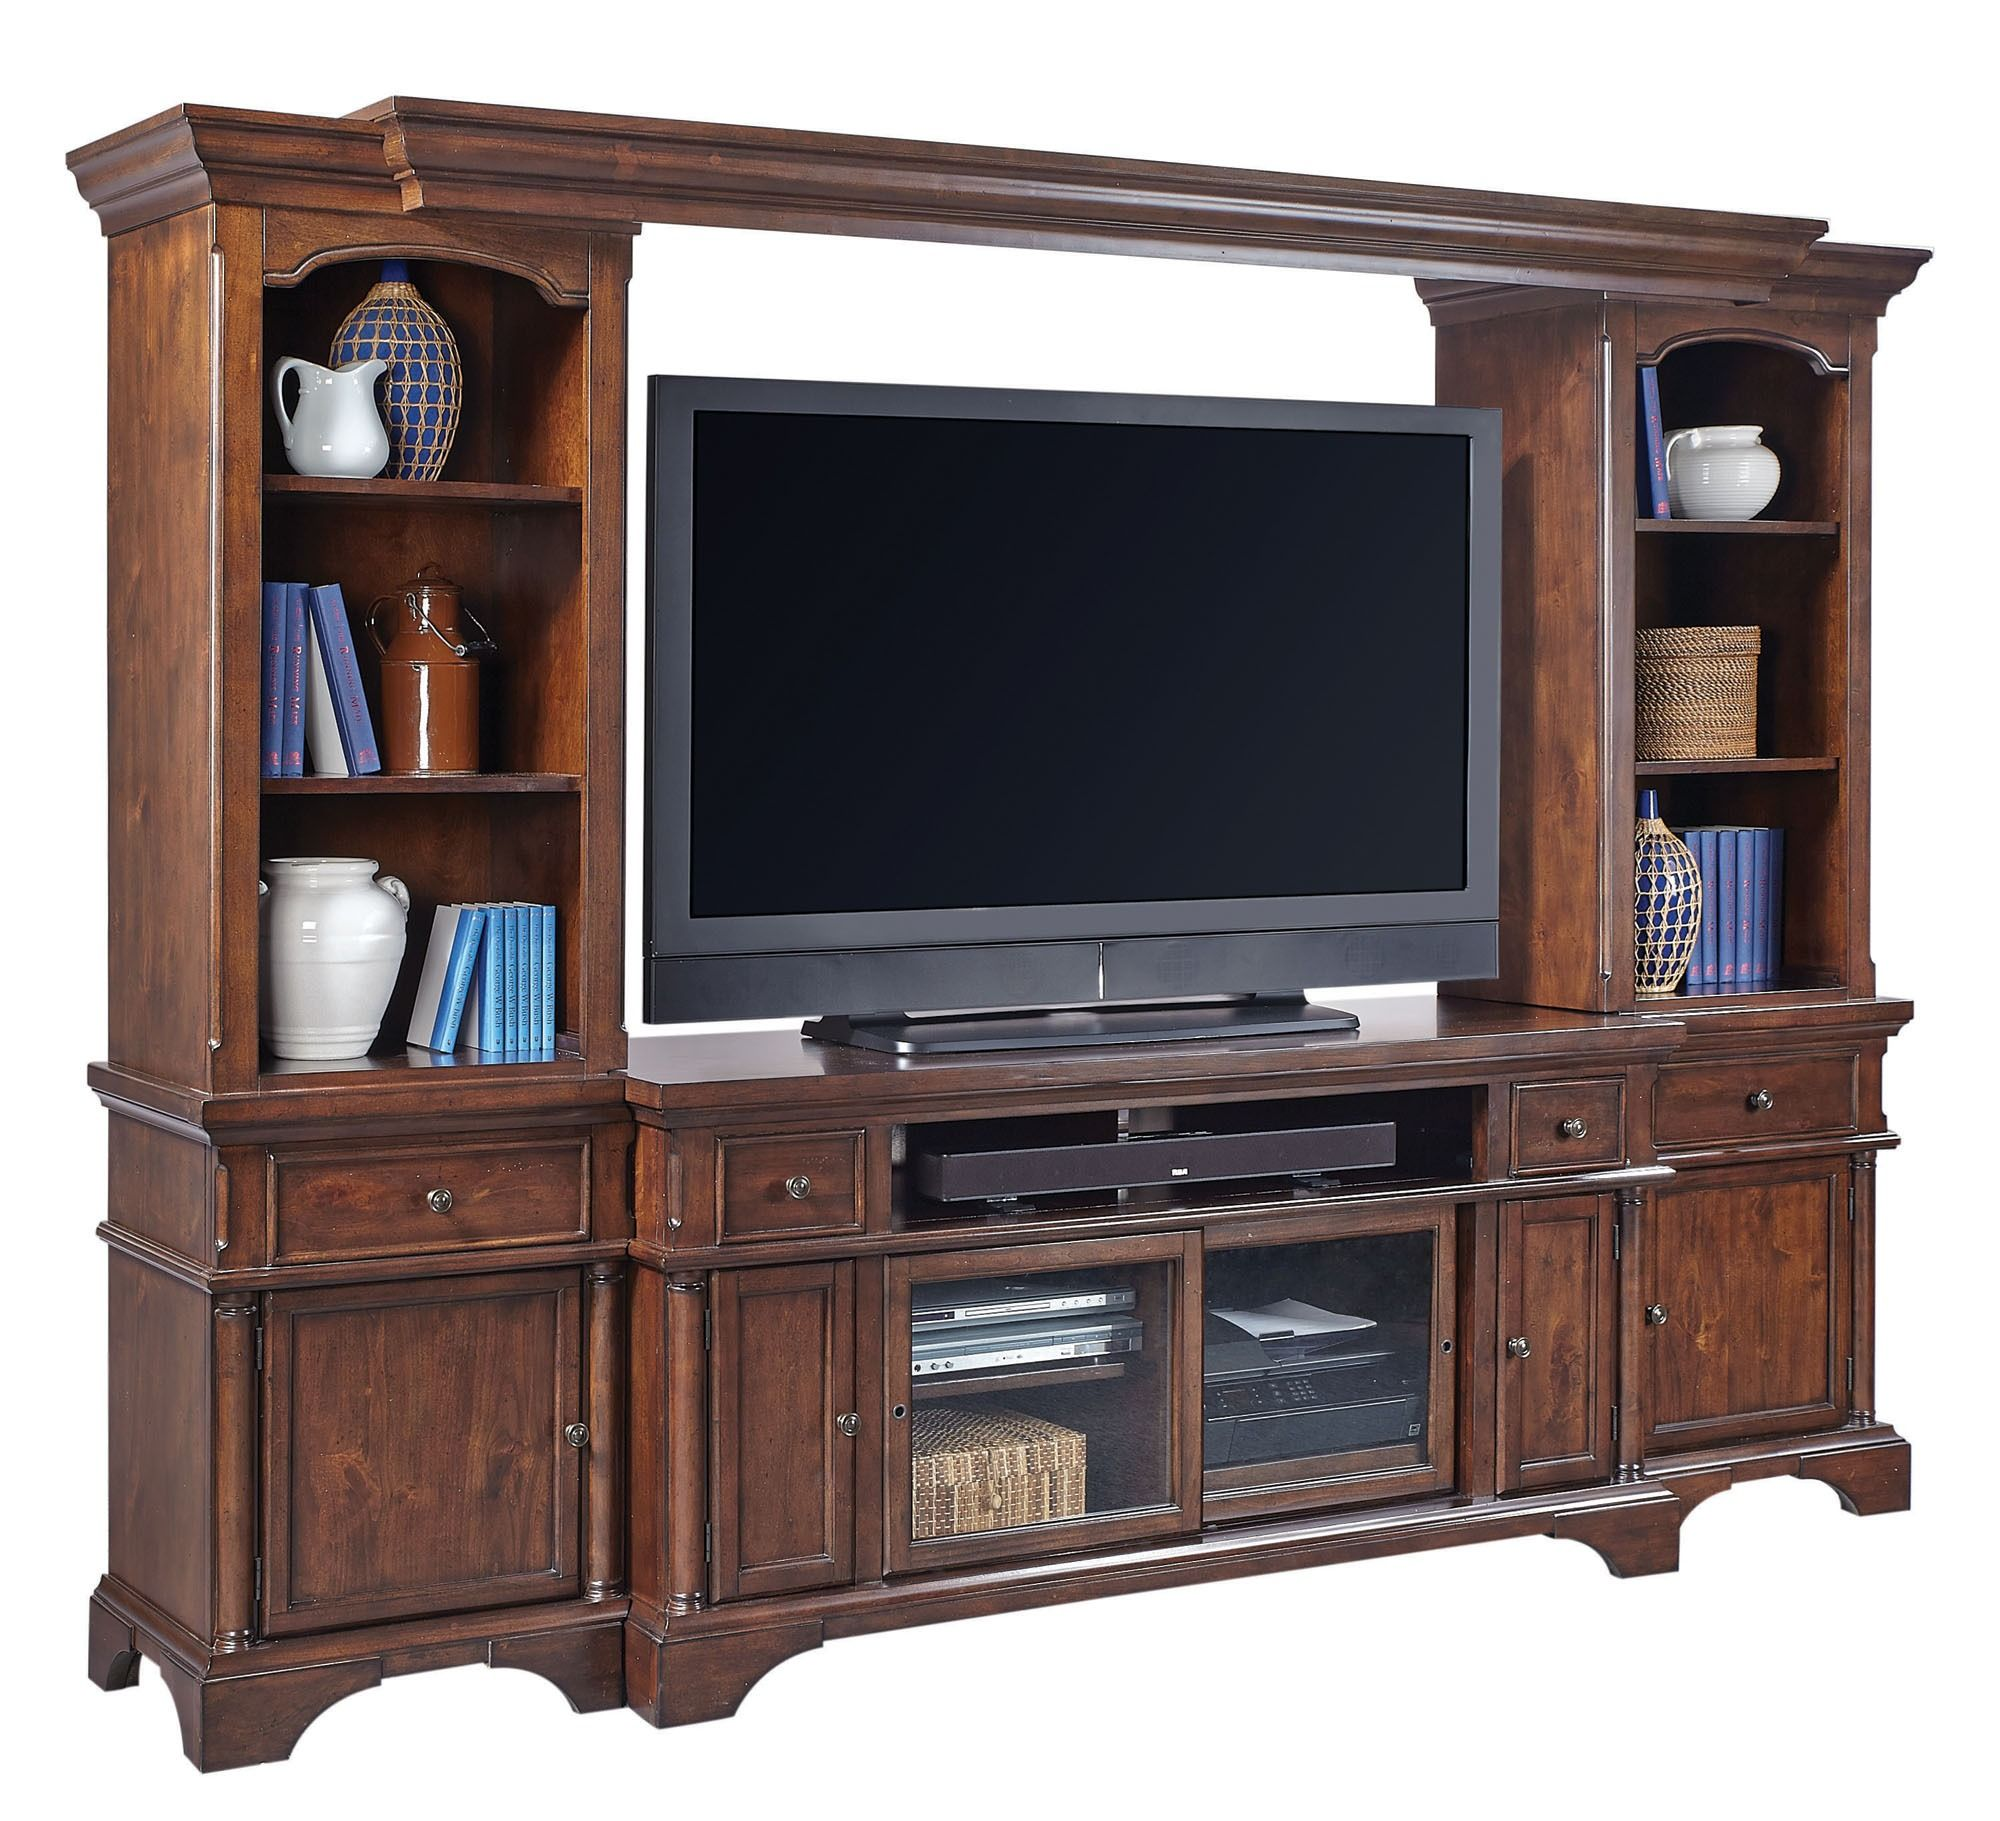 Bancroft Entertainment Wall | Aspen Home Furniture | Home Gallery Stores